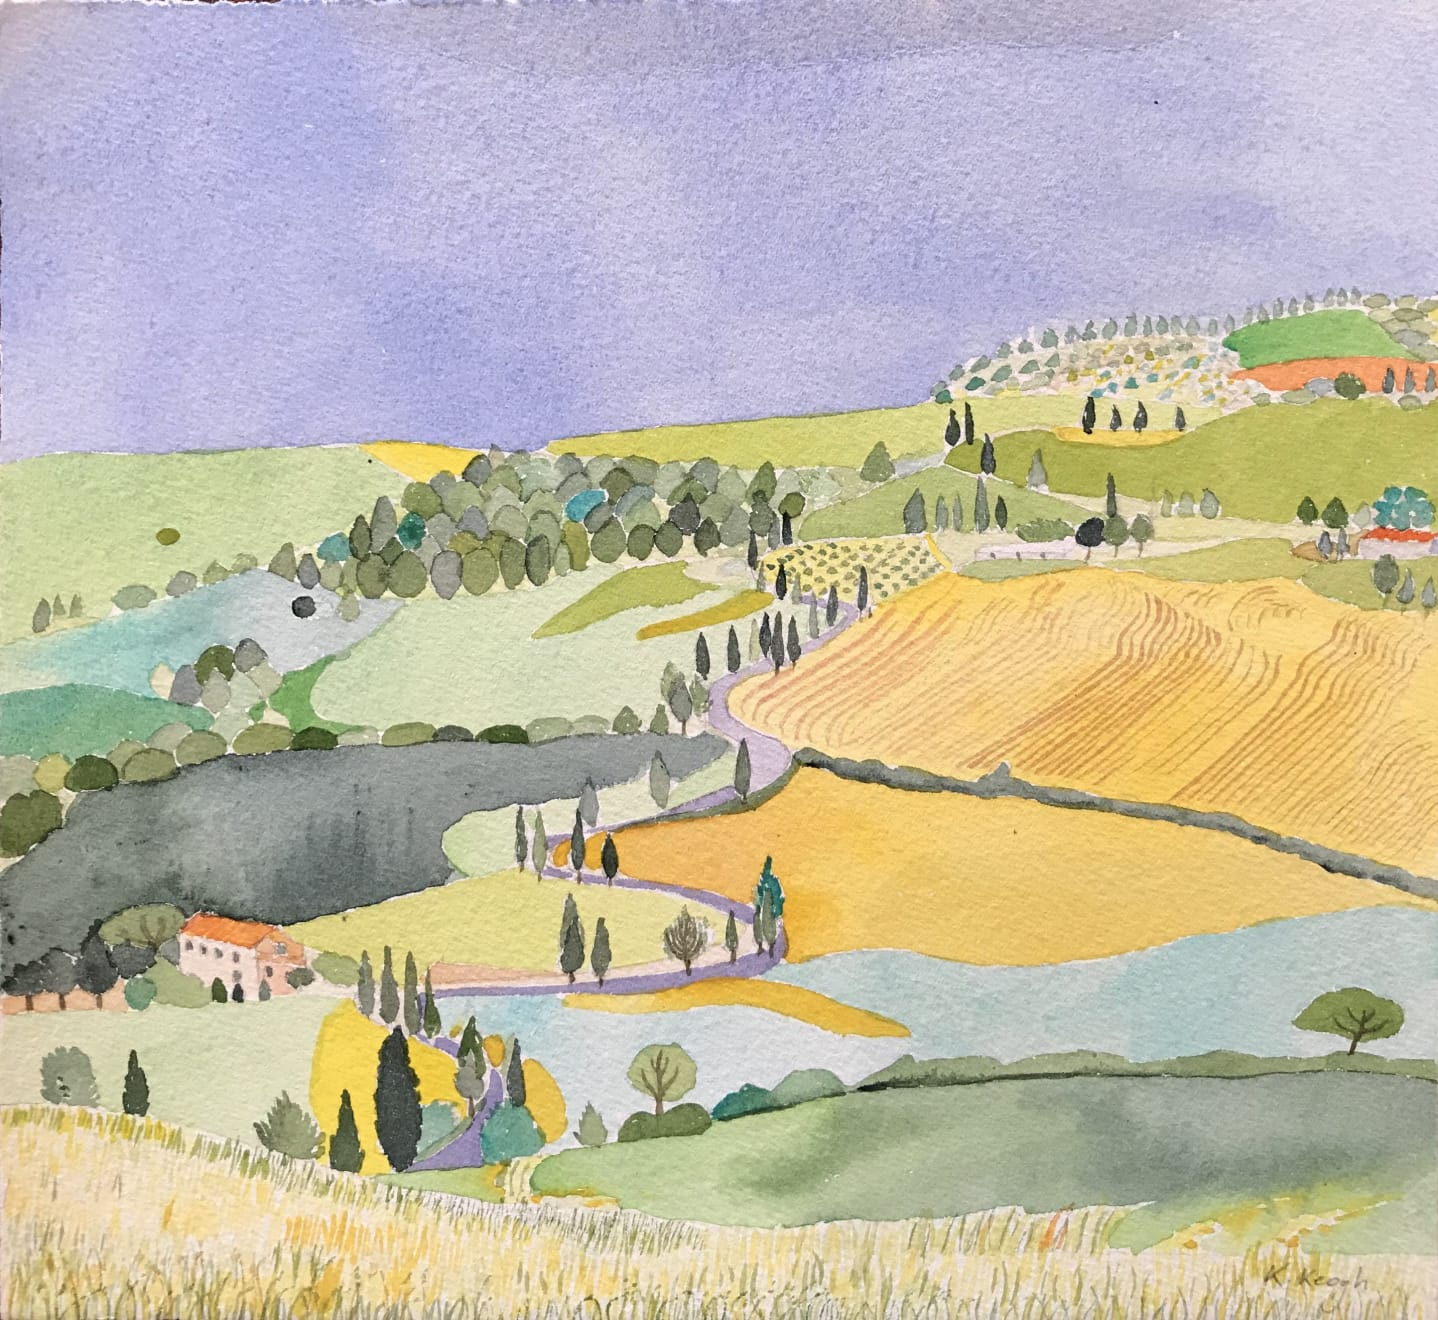 Karen Keogh, On the Road to Siena, Tuscany